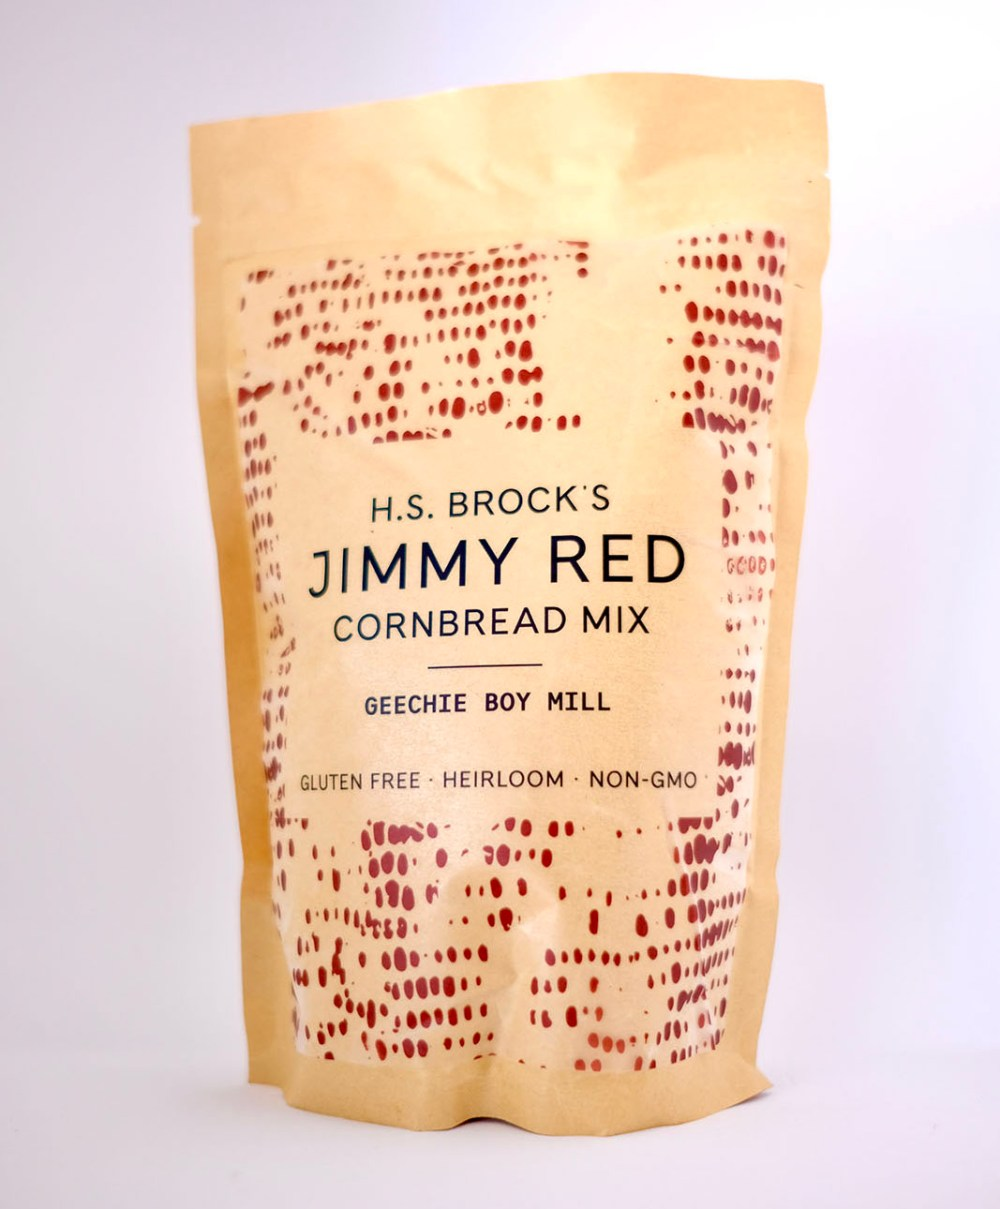 Jimmy-Red-Corn-Mix